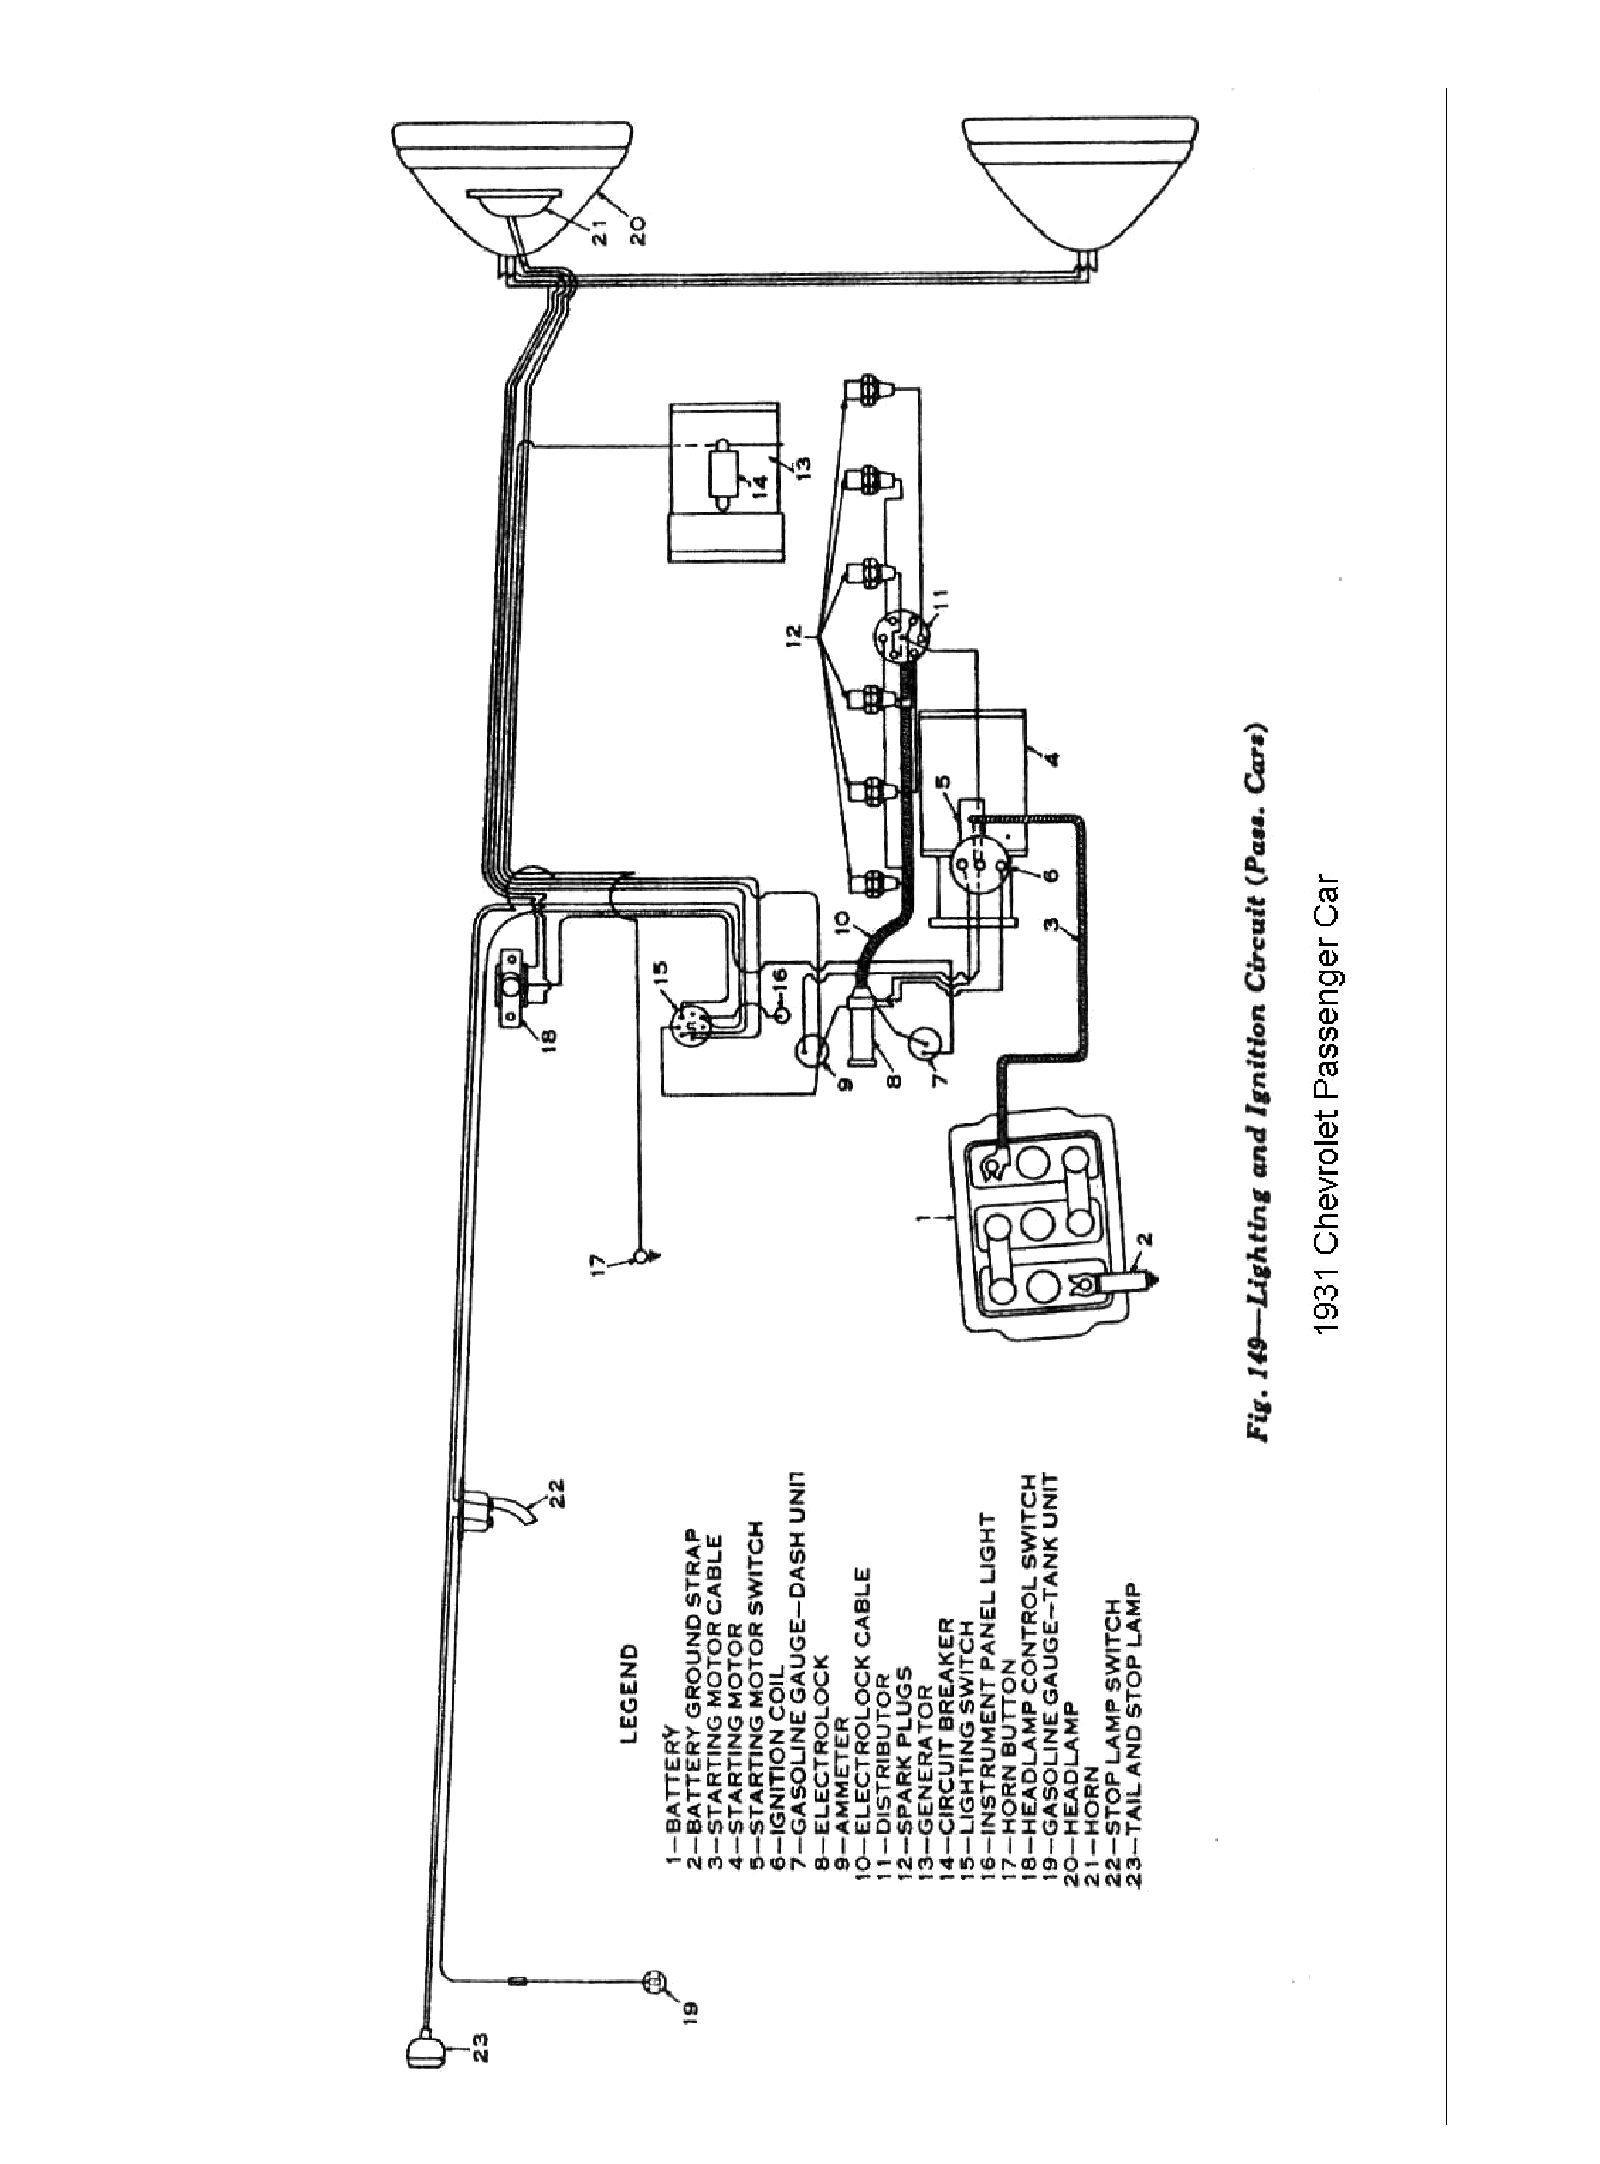 1956 Thunderbird Wiring Diagram 1957 Worksheet And For 57 Junction Box Wire Center U2022 Rh 207 246 102 26 Ford Harness 56